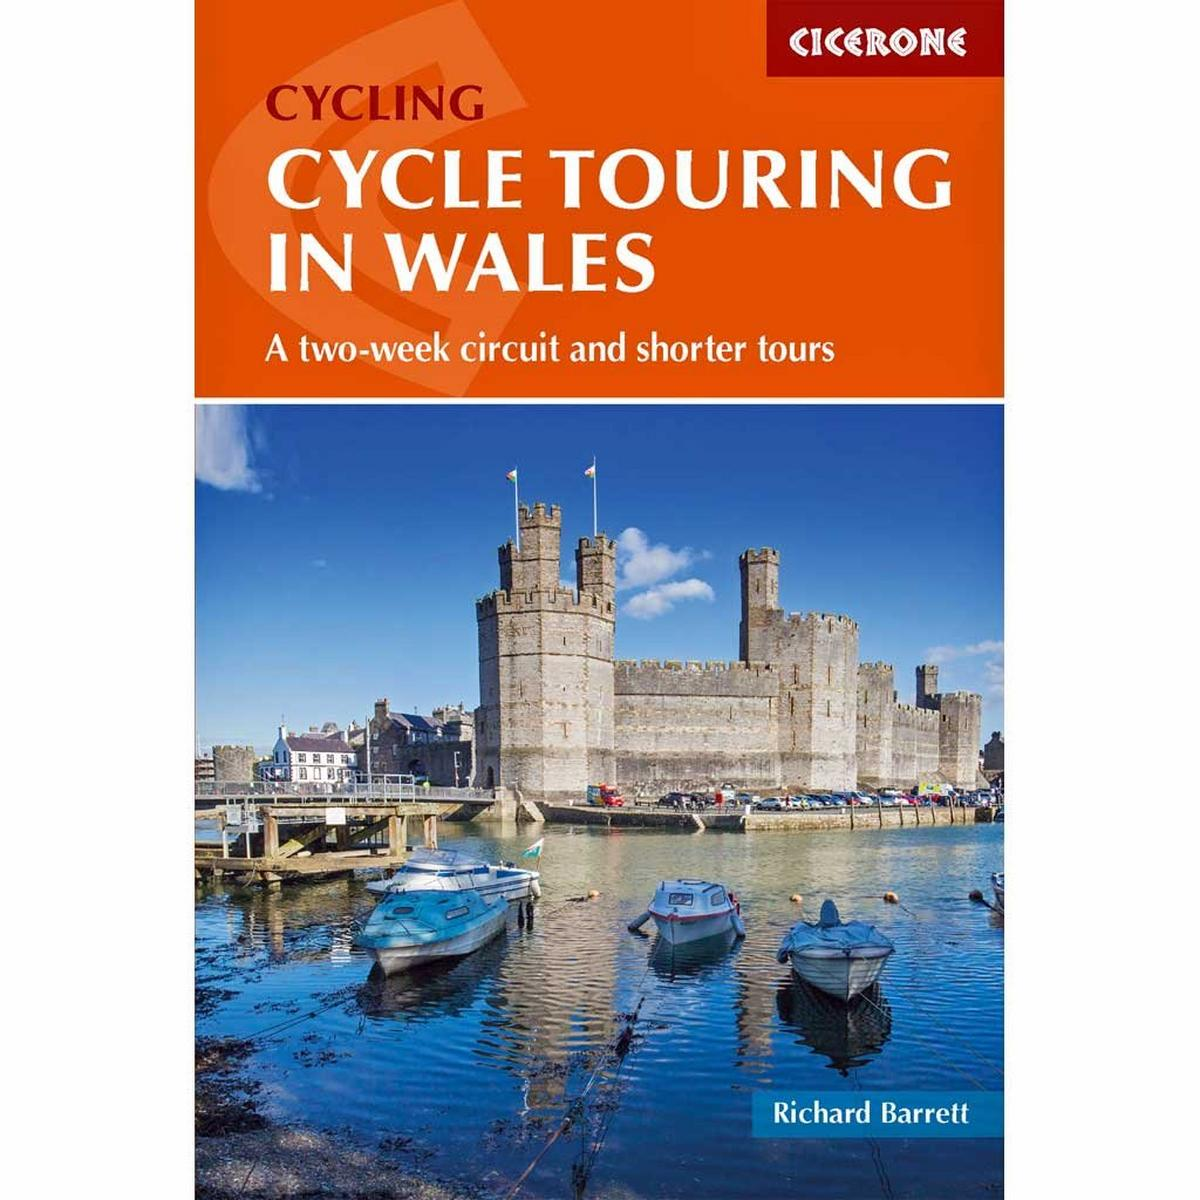 Cicerone Cycling Guide Book: Cycle Touring in Wales